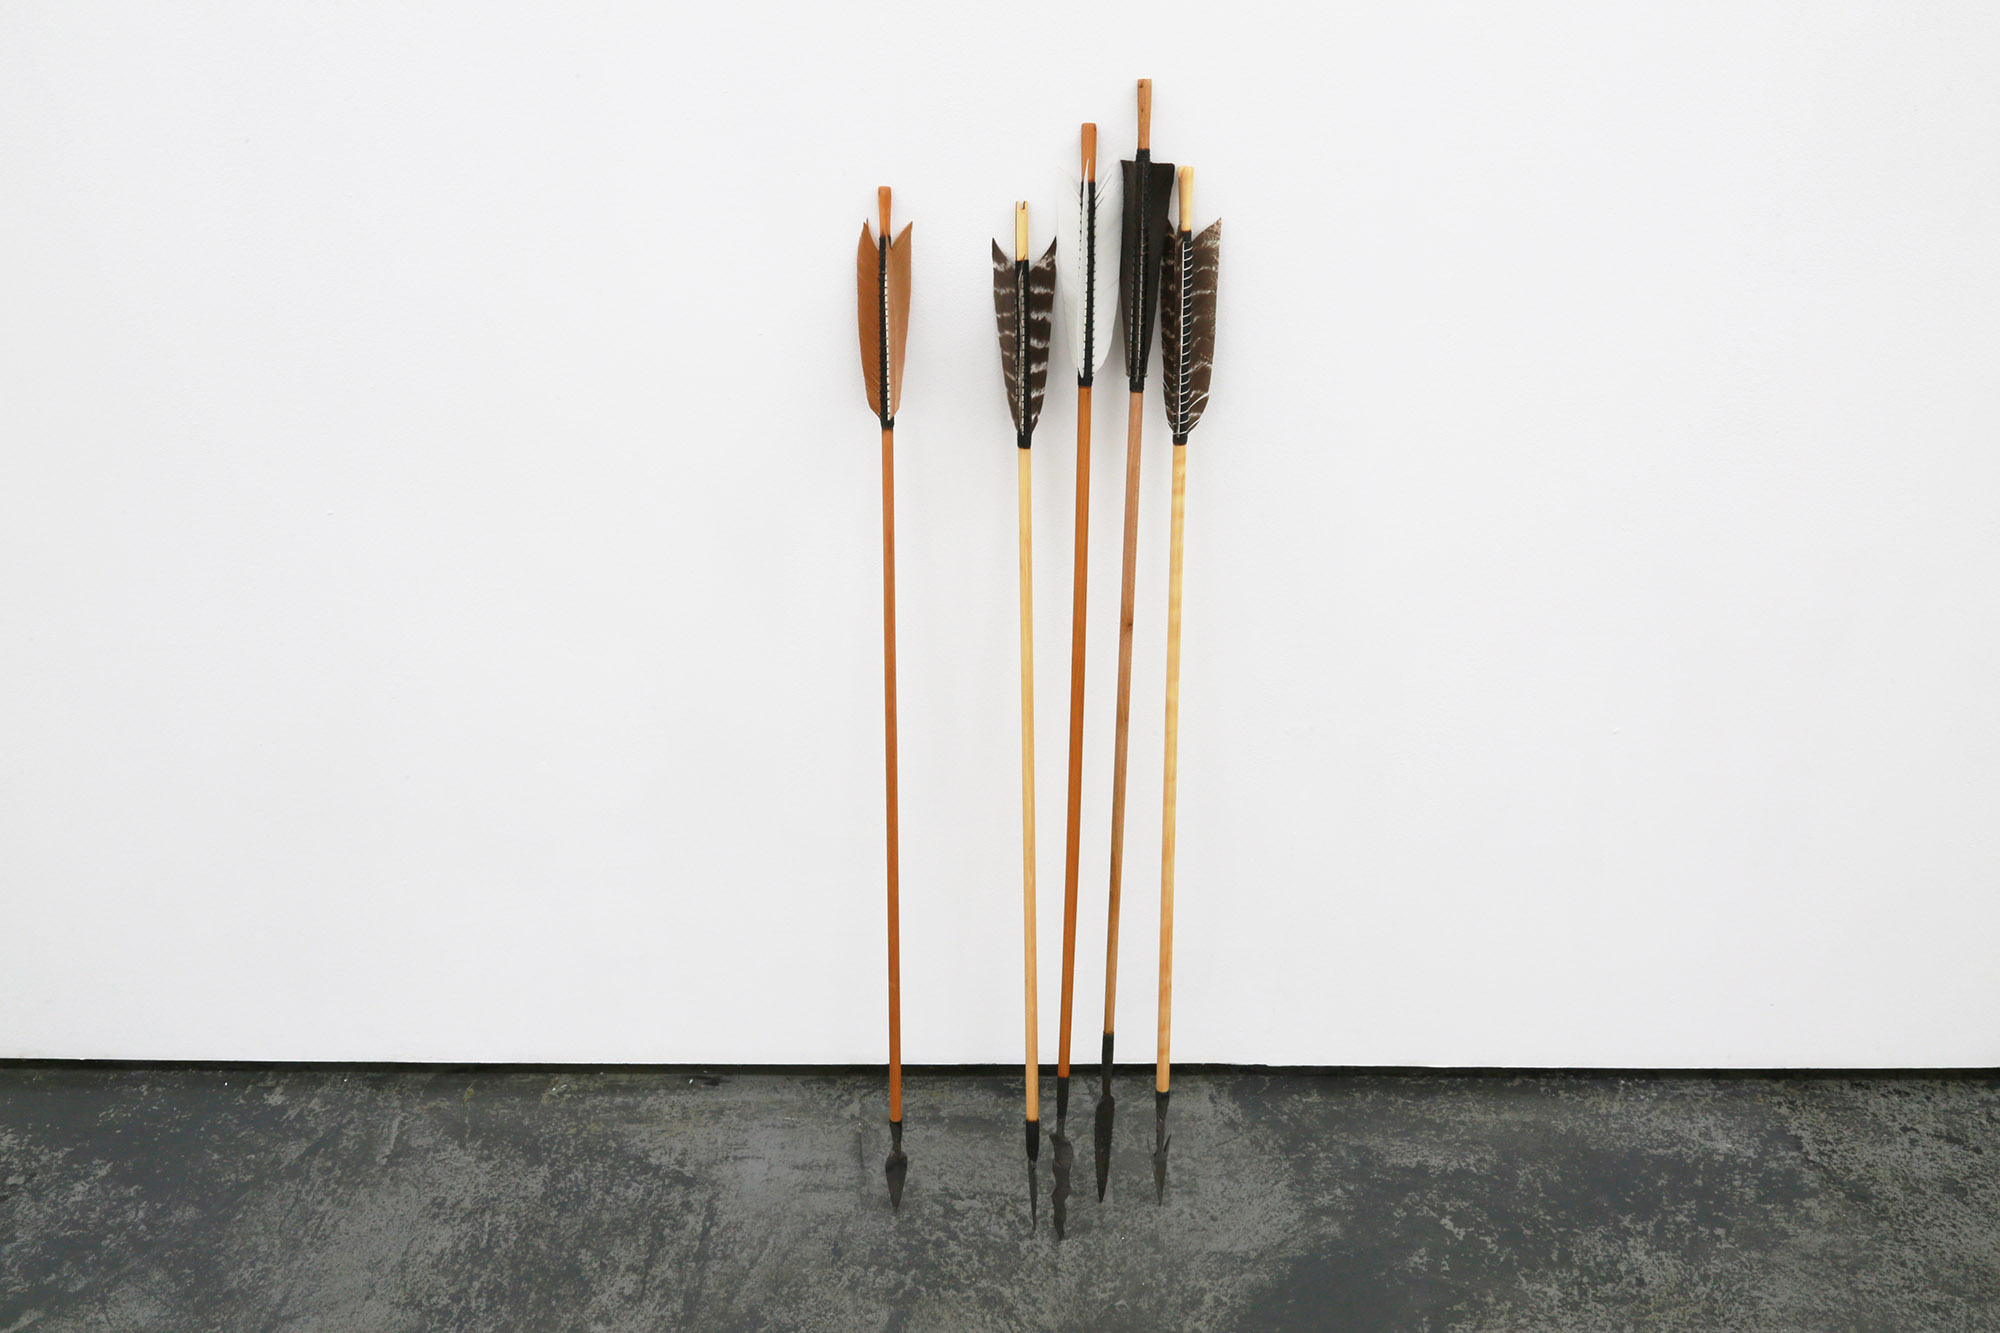 Christian Bang Jensen, Aimlessly Floating Through Space, 2016, meteorite iron, wood, feathers, tar, arrowheads made by viking smith, arrows made by medieval fletcher, Variable dimensions